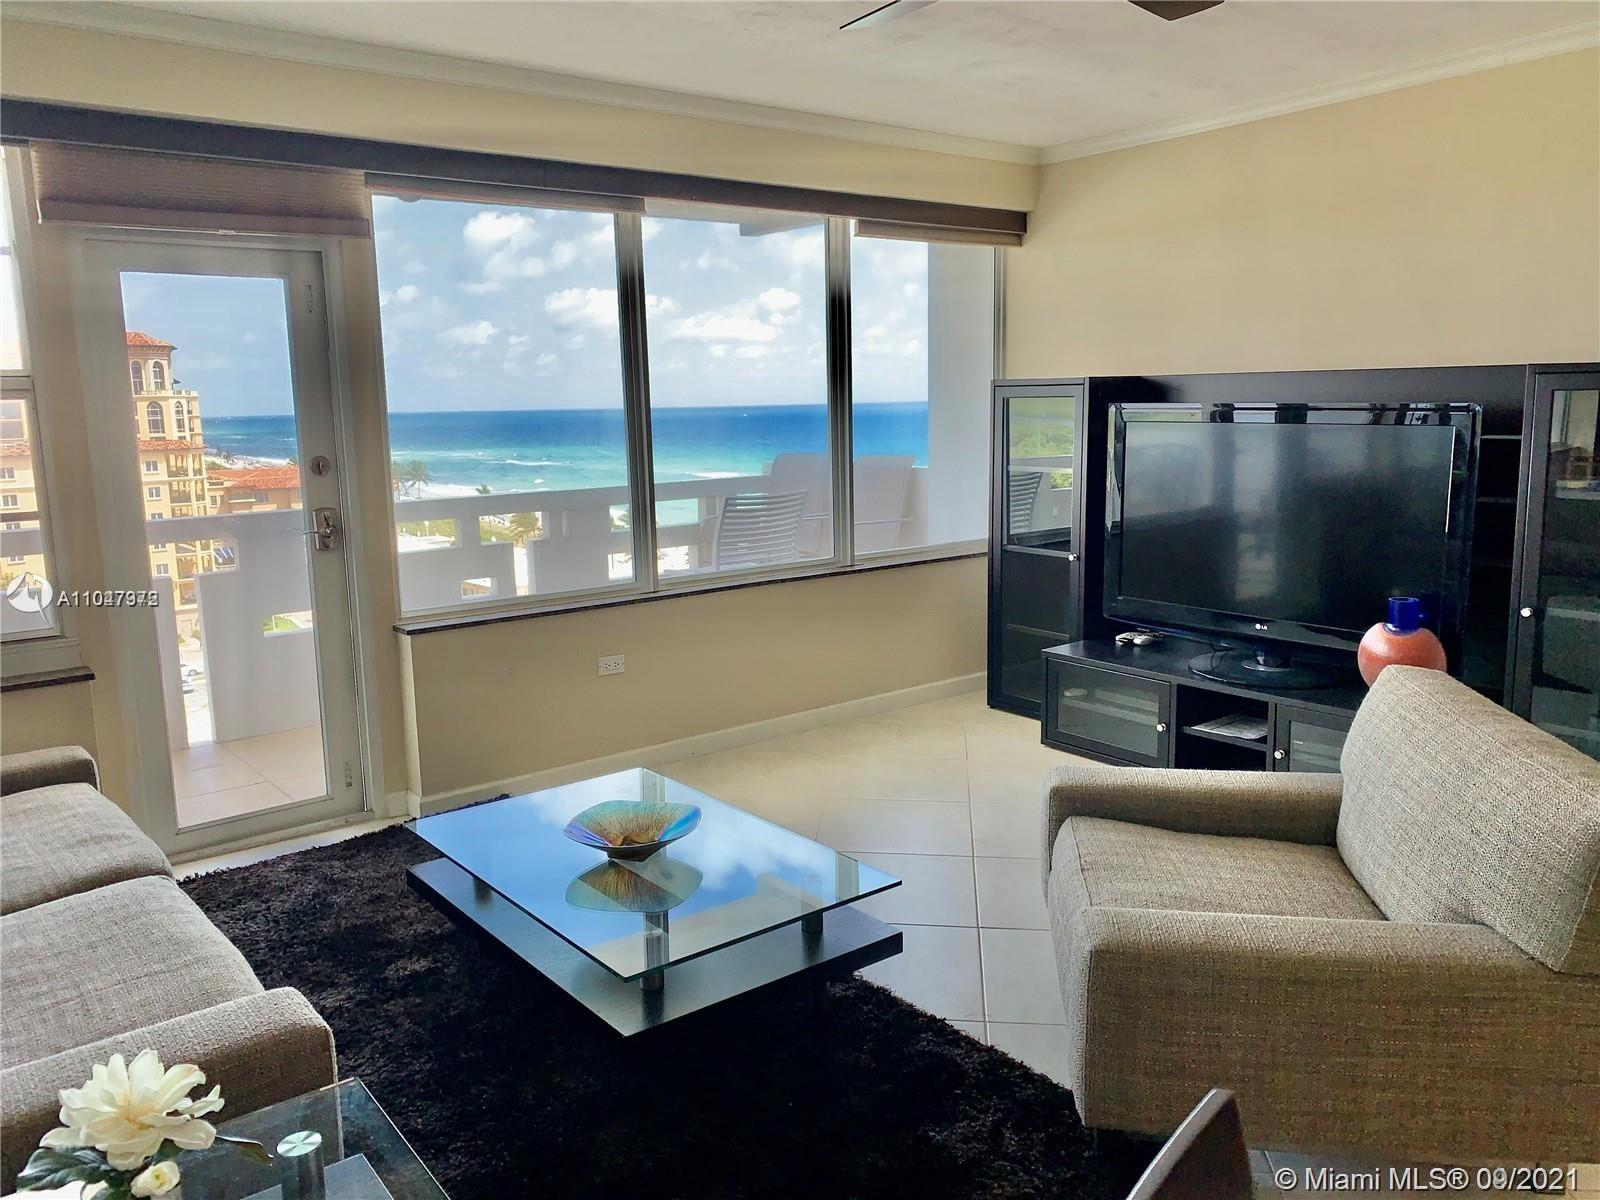 **BEAUTIFUL, FULLY RENOVATED, FULLY FURNISHED AND FULLY EQUIPPED 2BED/2BATH OCEANFRONT CONDO IN HOLL